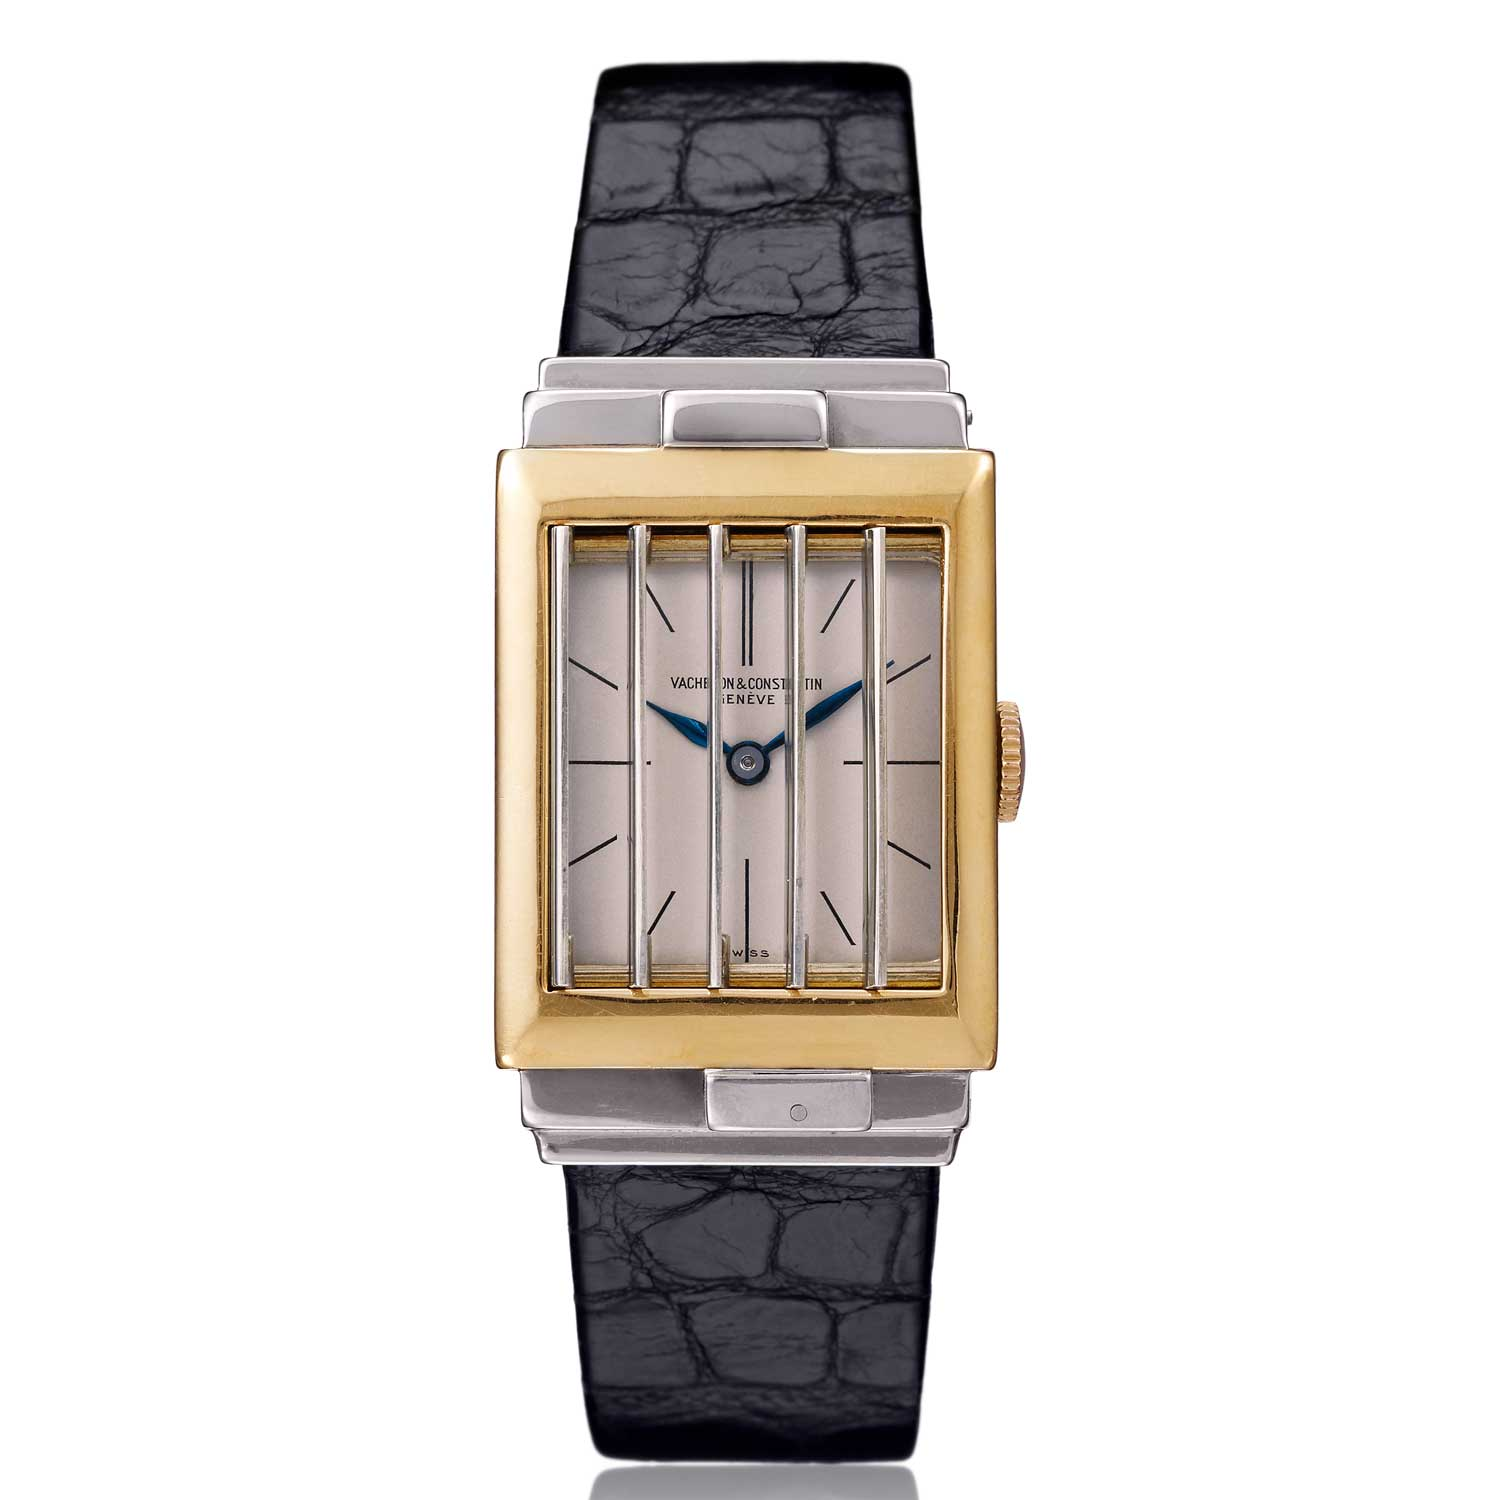 A 1930s shutter watch made by Vacheron Constantin in collaboration with Paris-based jewellers Verger Frères.